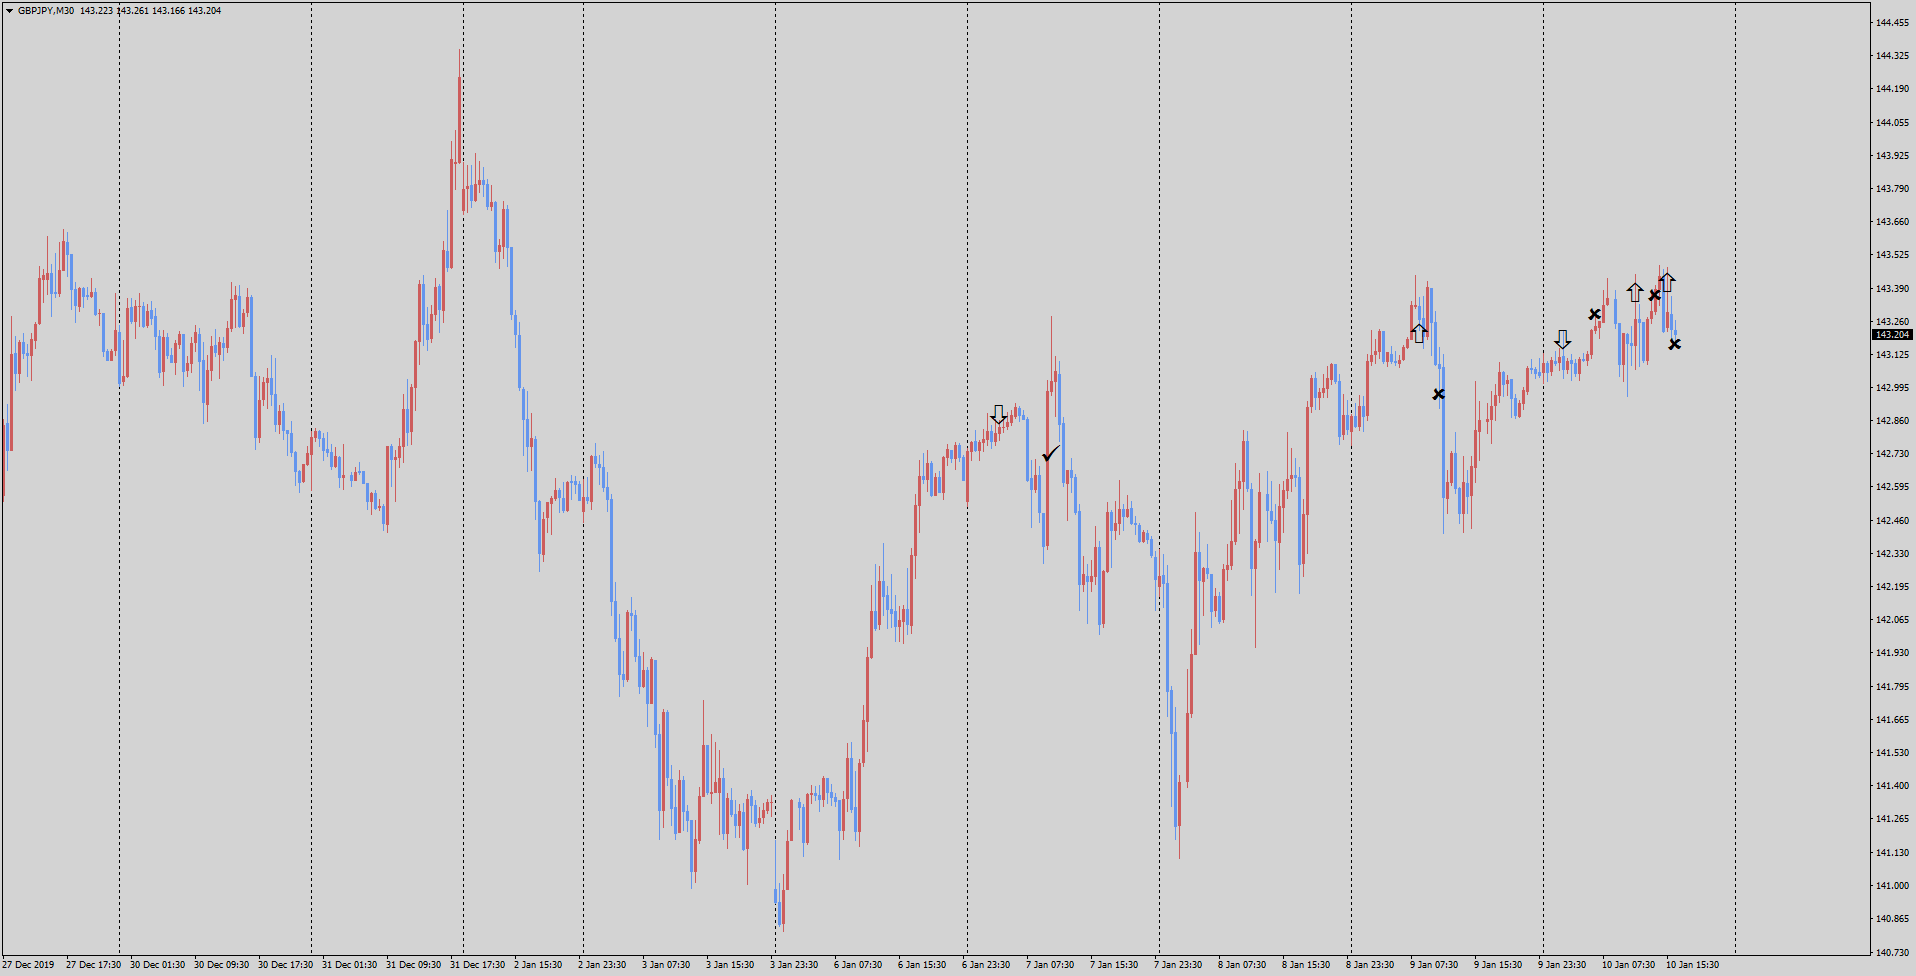 gbpjpy-m30-tradexfin-limited.png